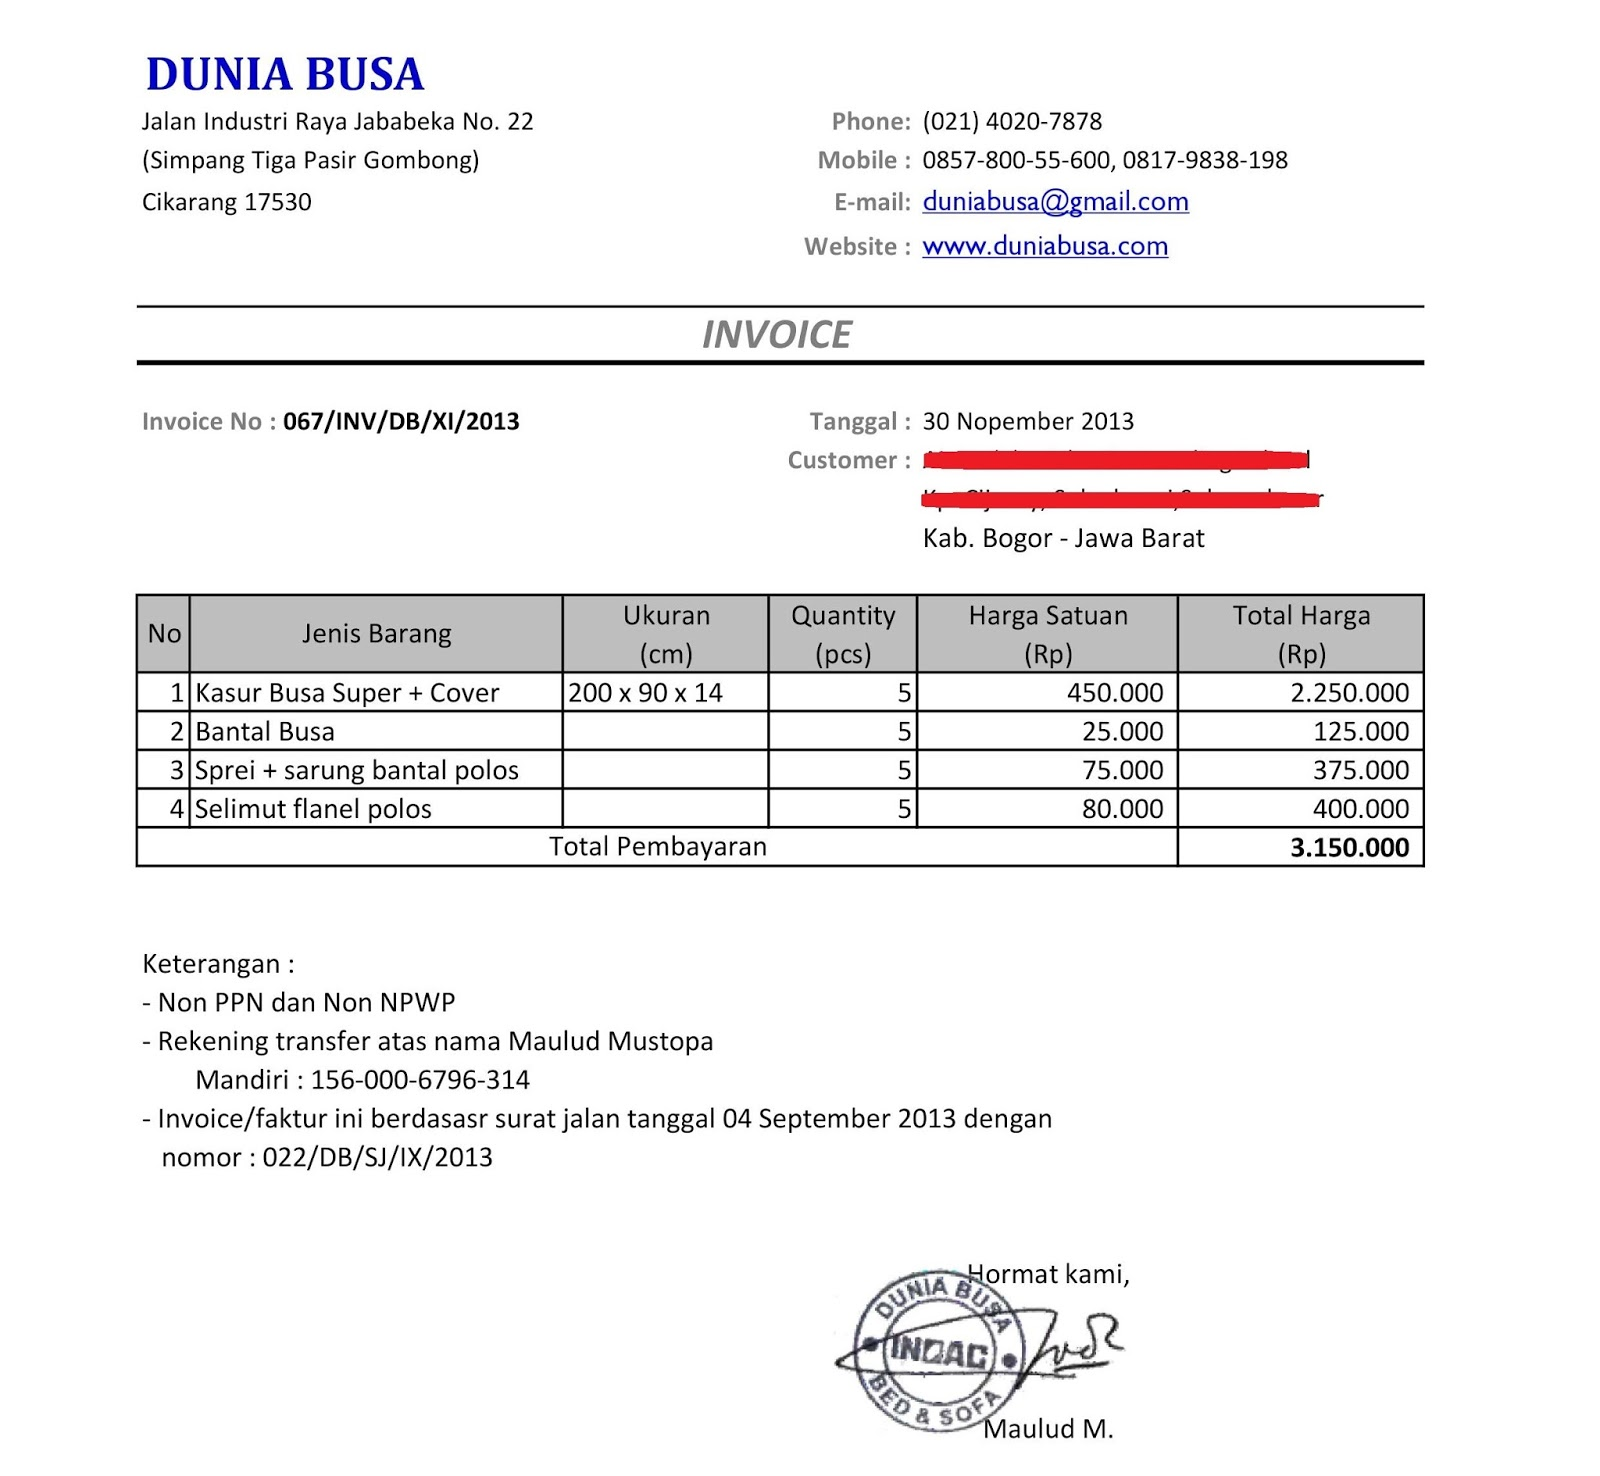 Poorboyzjeepclubus  Outstanding Free Invoice Online  Create Invoice Online  Invoice Template  With Heavenly Contoh Format Invoice Atau Surat Tagihan  Brankas Arsip  Free Invoice Online With Cool Consignment Invoice Also Tax Invoice Template In Addition How To Create Invoice In Quickbooks And Examples Of An Invoice As Well As Invoice Disclaimer Additionally Fob Invoice From Sklepco With Poorboyzjeepclubus  Heavenly Free Invoice Online  Create Invoice Online  Invoice Template  With Cool Contoh Format Invoice Atau Surat Tagihan  Brankas Arsip  Free Invoice Online And Outstanding Consignment Invoice Also Tax Invoice Template In Addition How To Create Invoice In Quickbooks From Sklepco